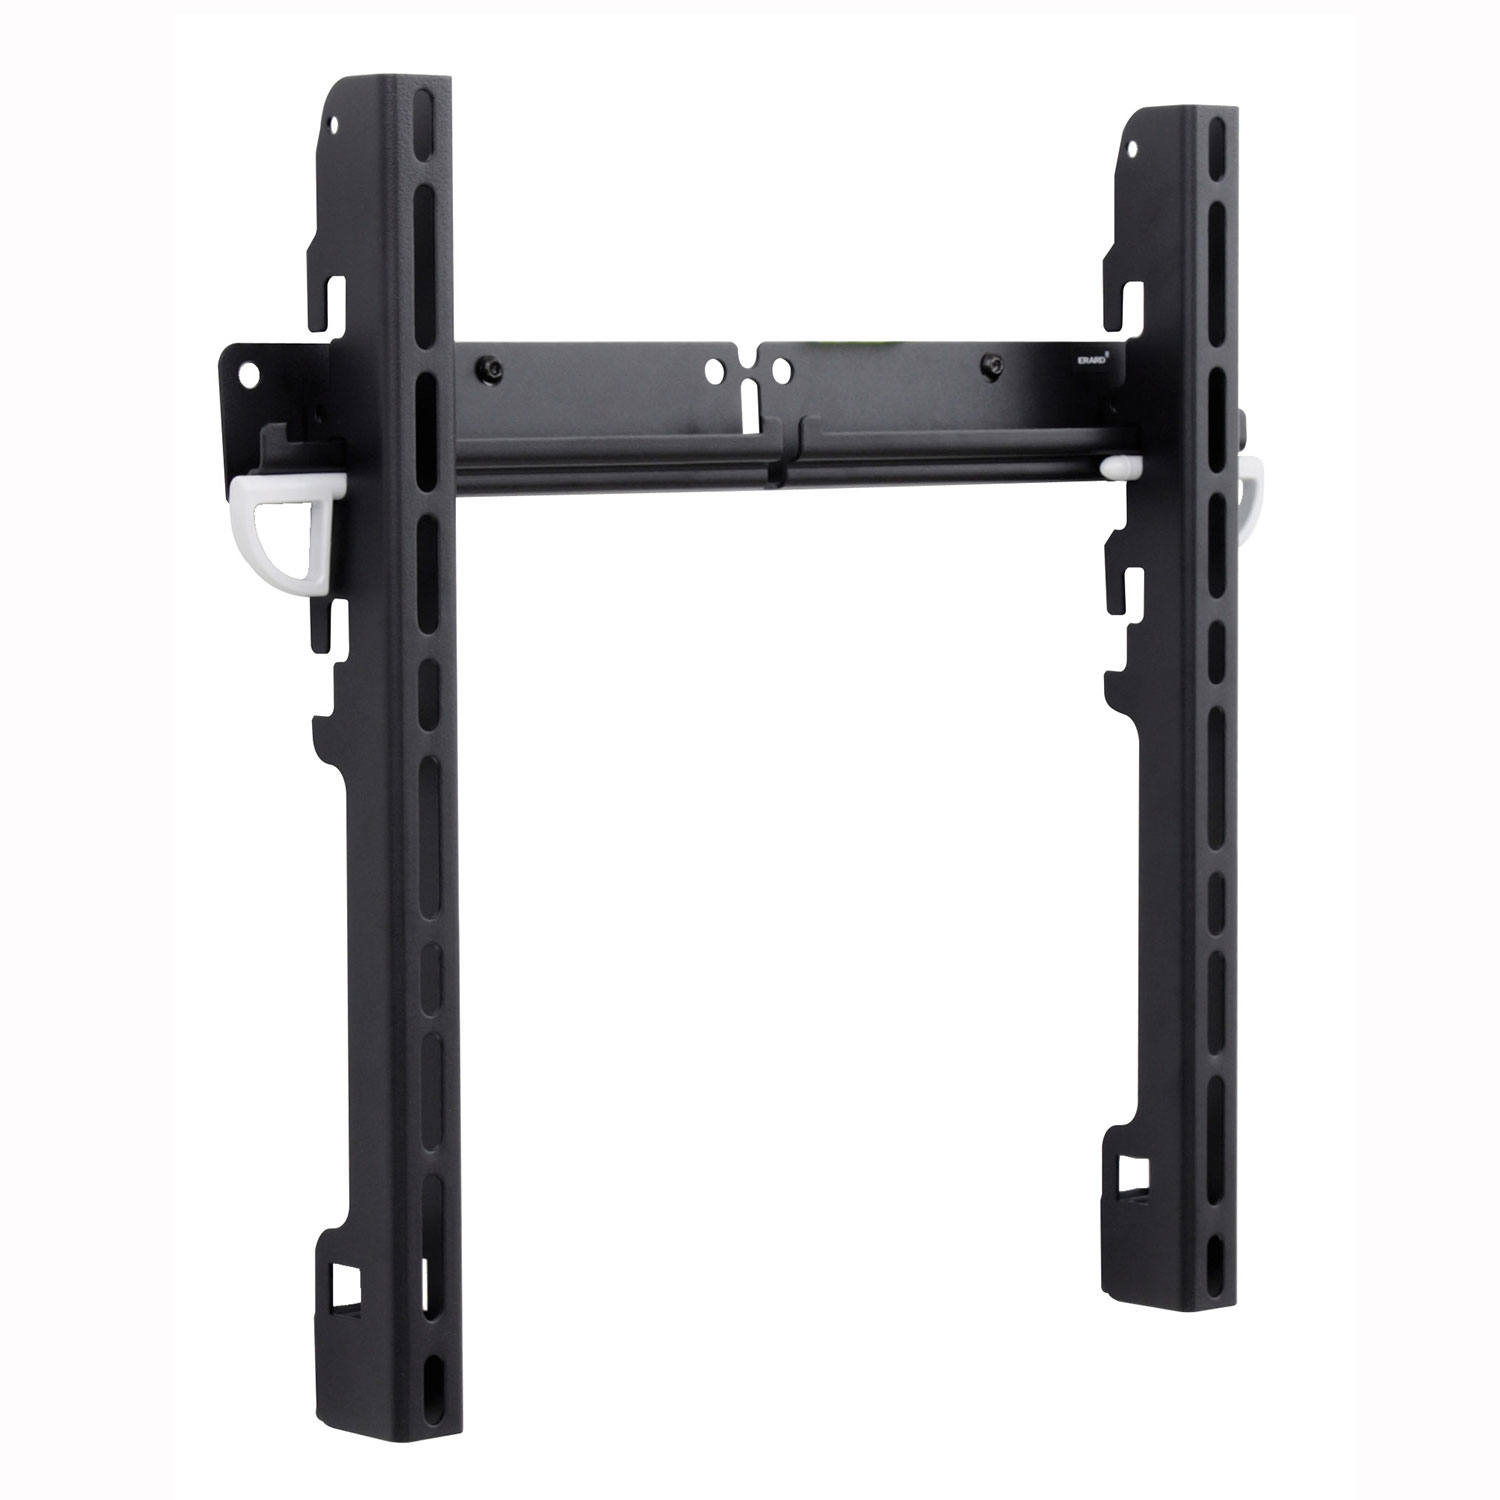 APPLIK FIXED - fixed wall mount with wall offset